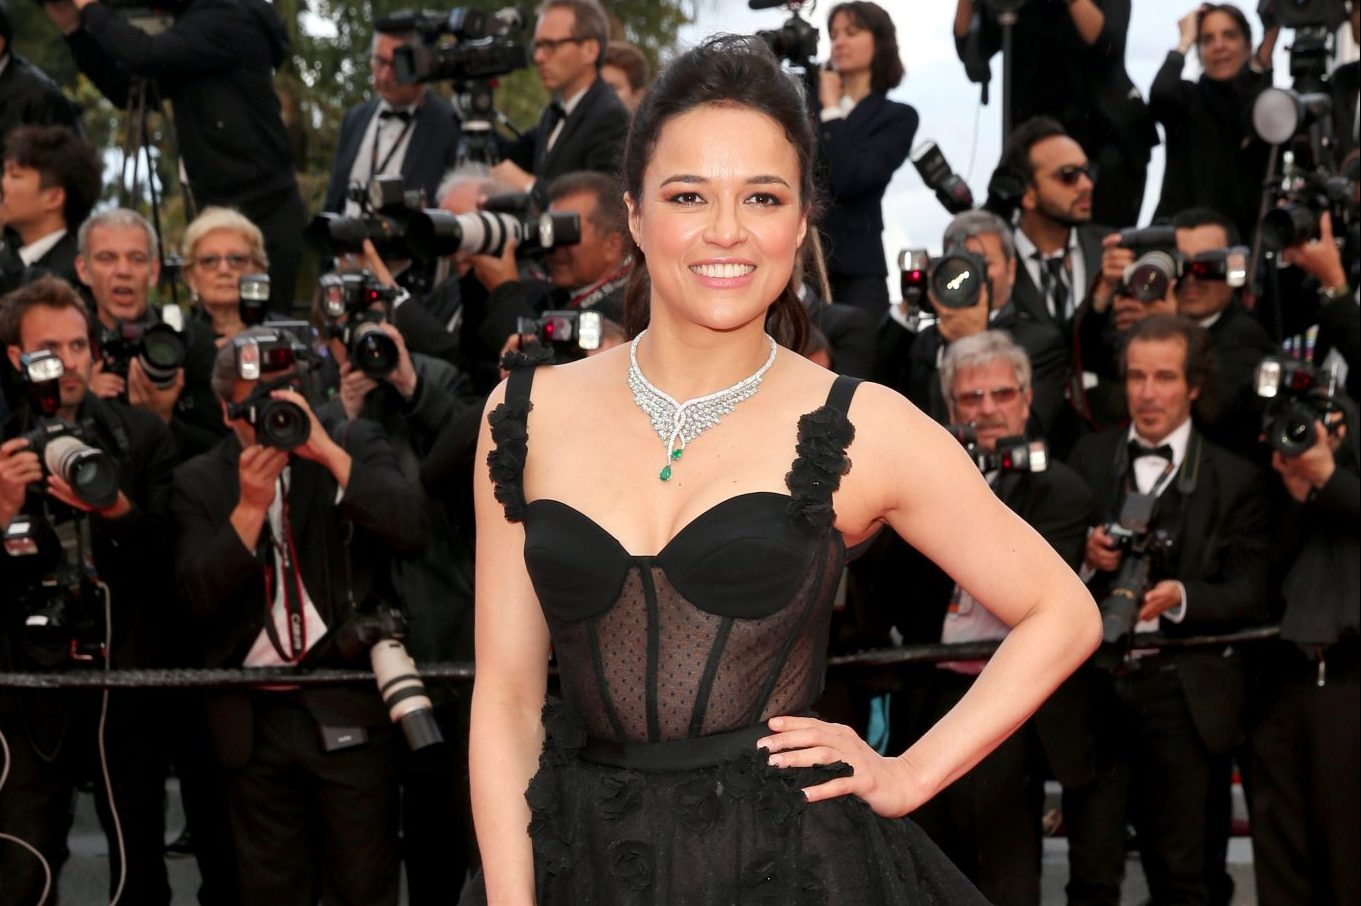 """Michelle Rodriguez attends the screening of """"Blackkklansman"""" during the 71st annual Cannes Film Festival at Palais des Festivals on May 14, 2018 in Cannes, France. Credit: Gisela Schober/Getty Images"""